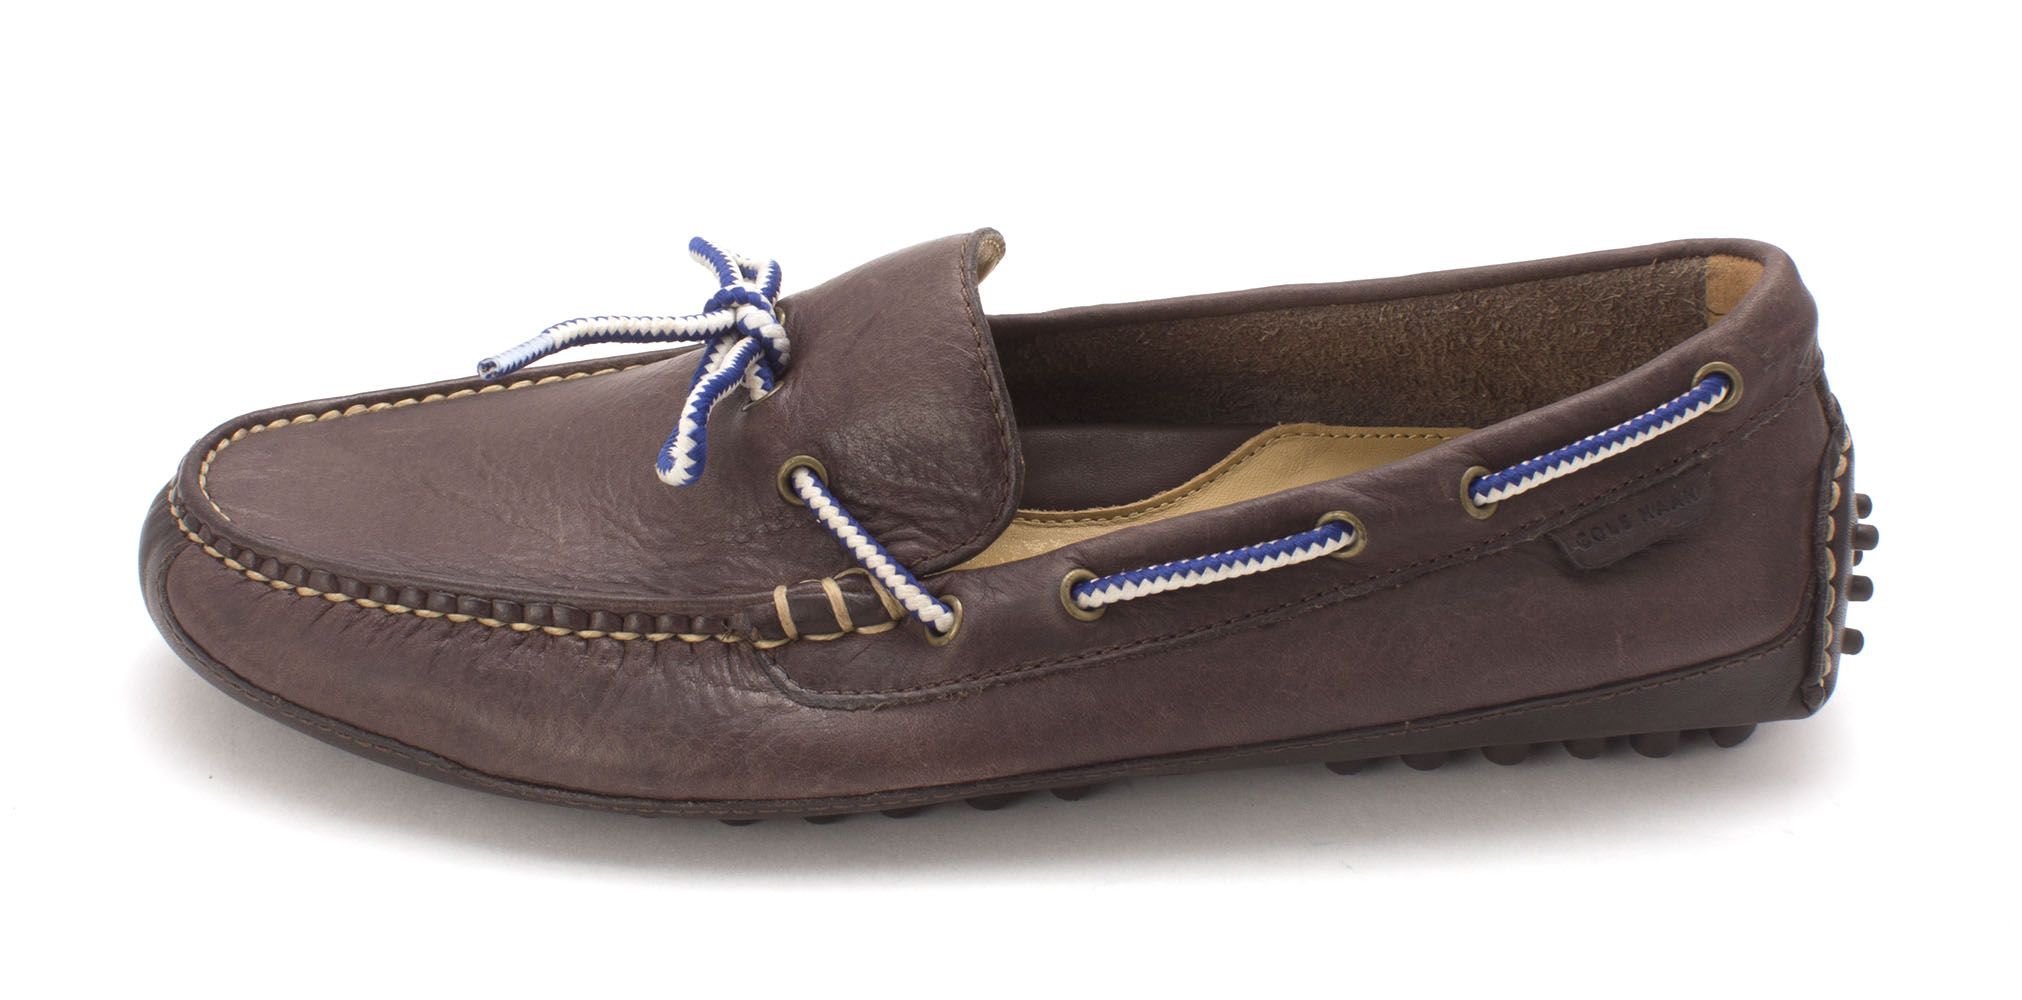 Cole Haan Mens Edwardsam Closed Toe Boat Shoes